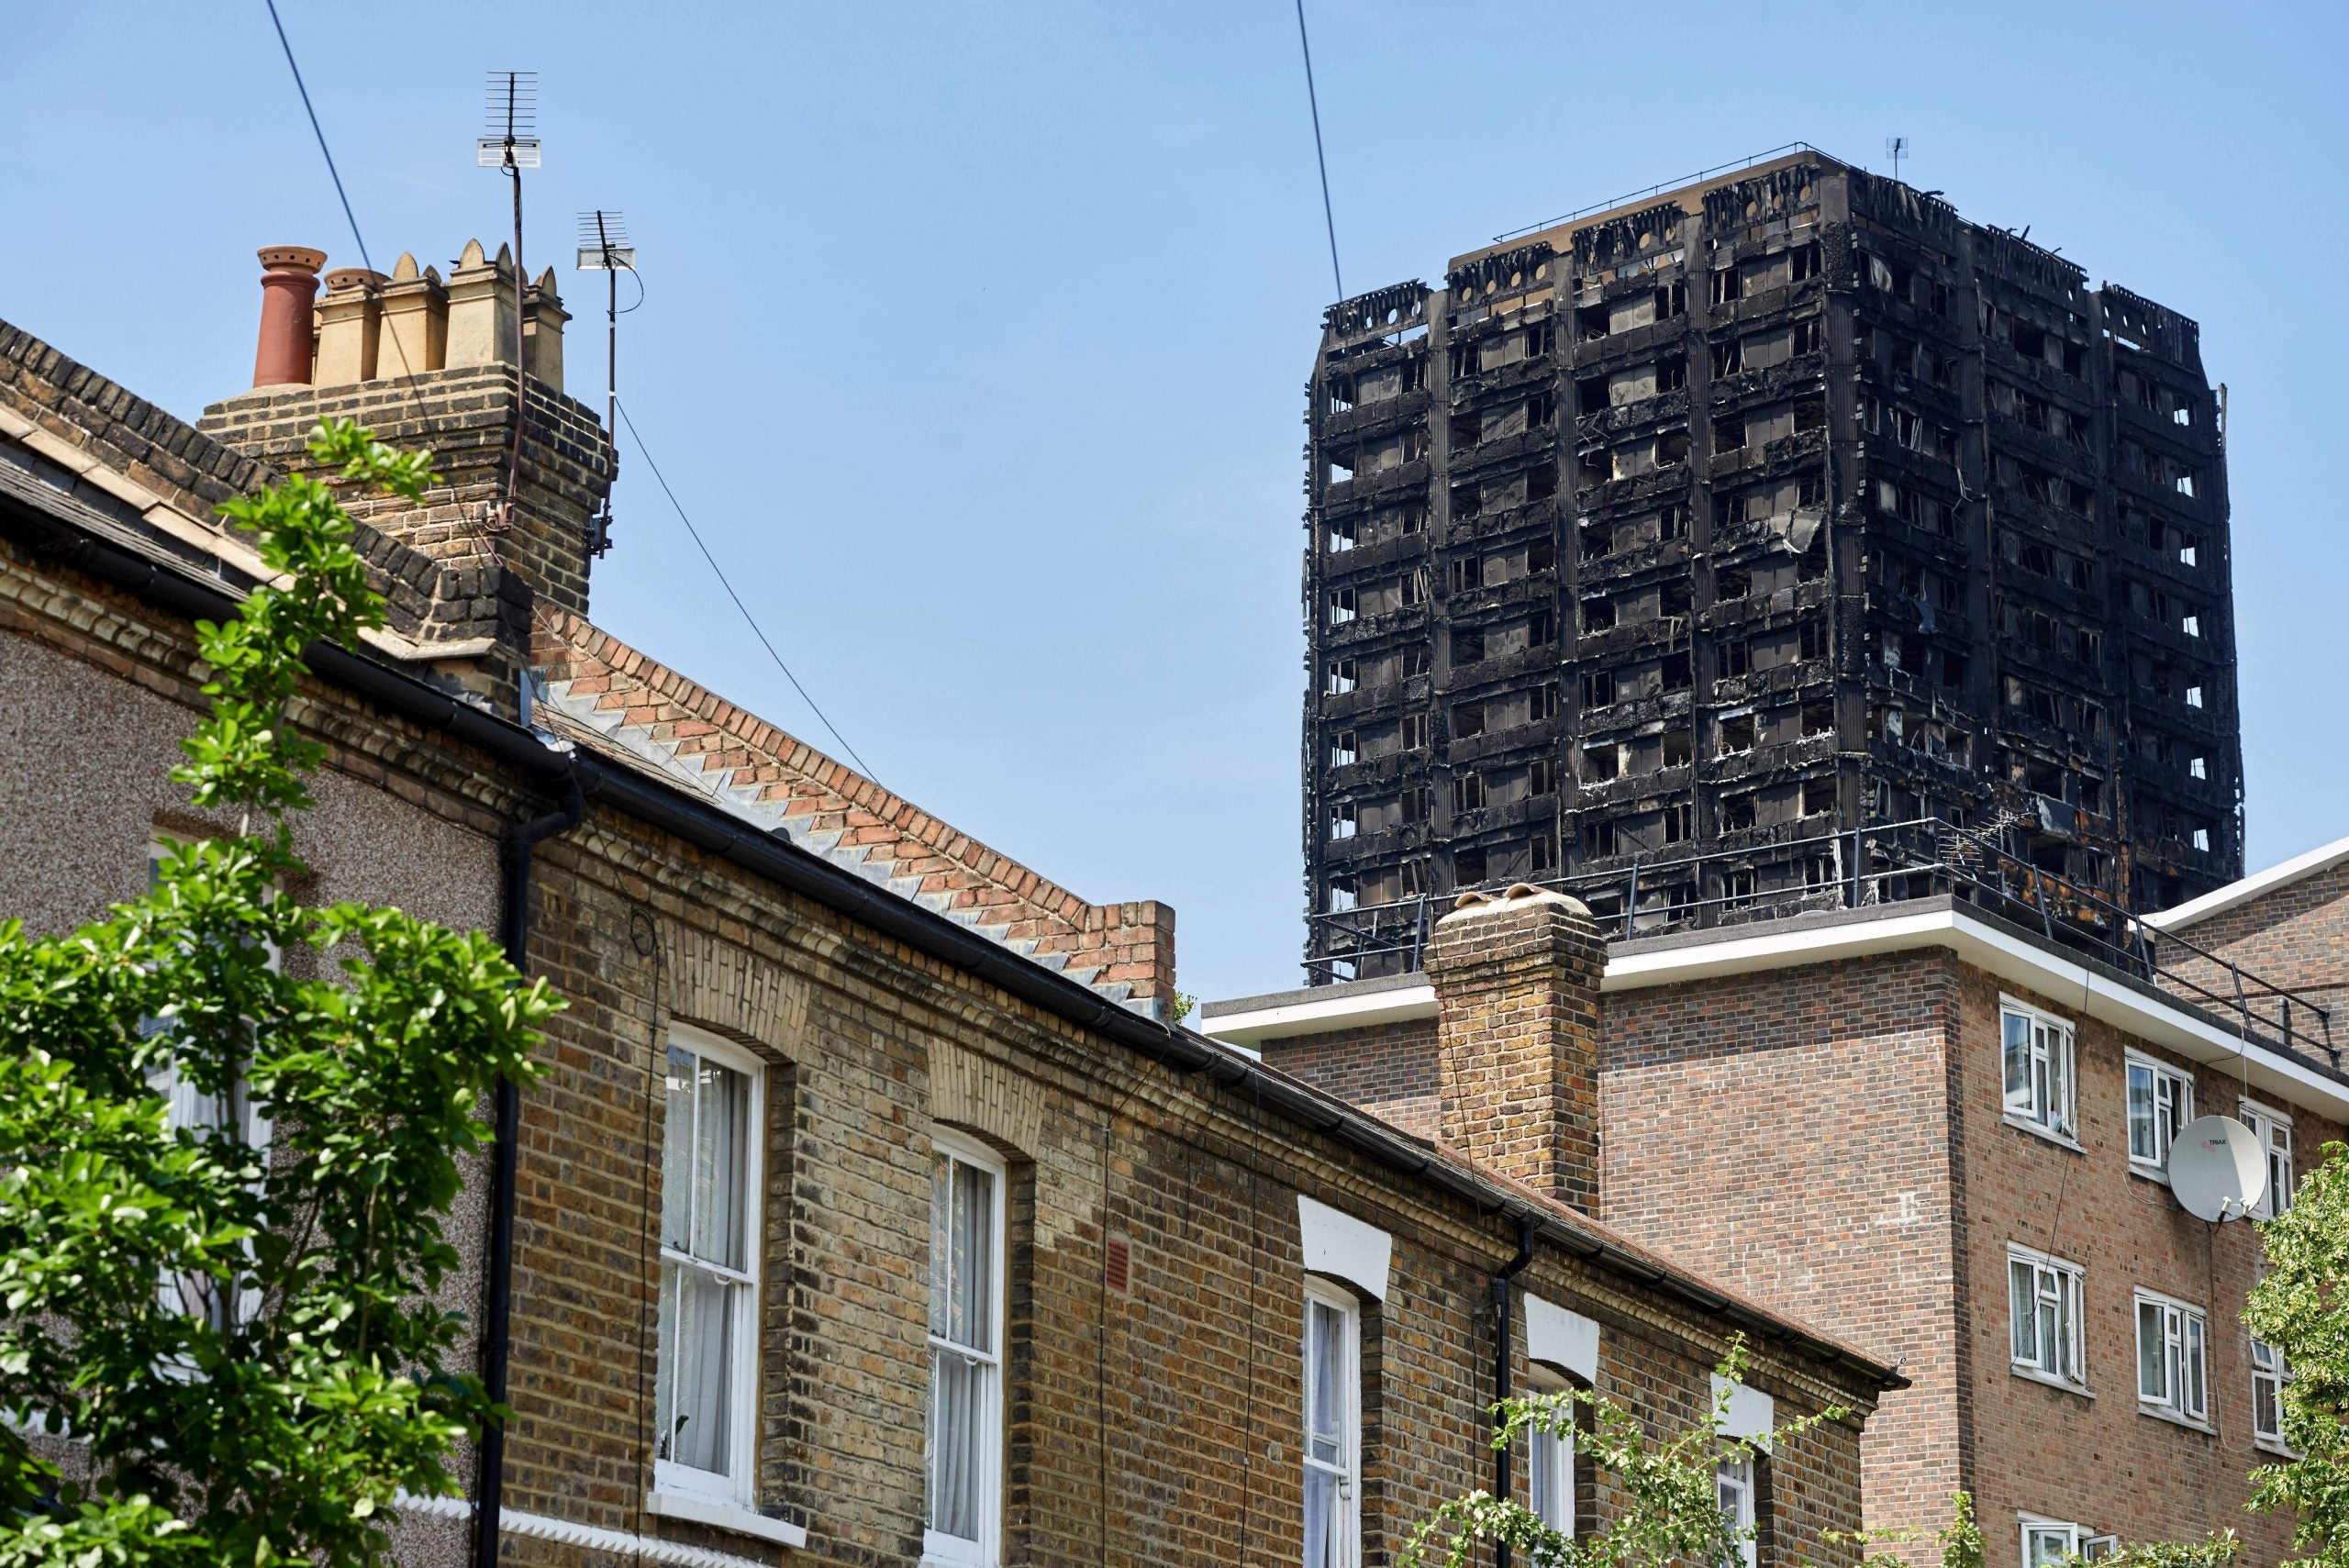 Radio as shelter: Grenfell Tower was too frightening to look at